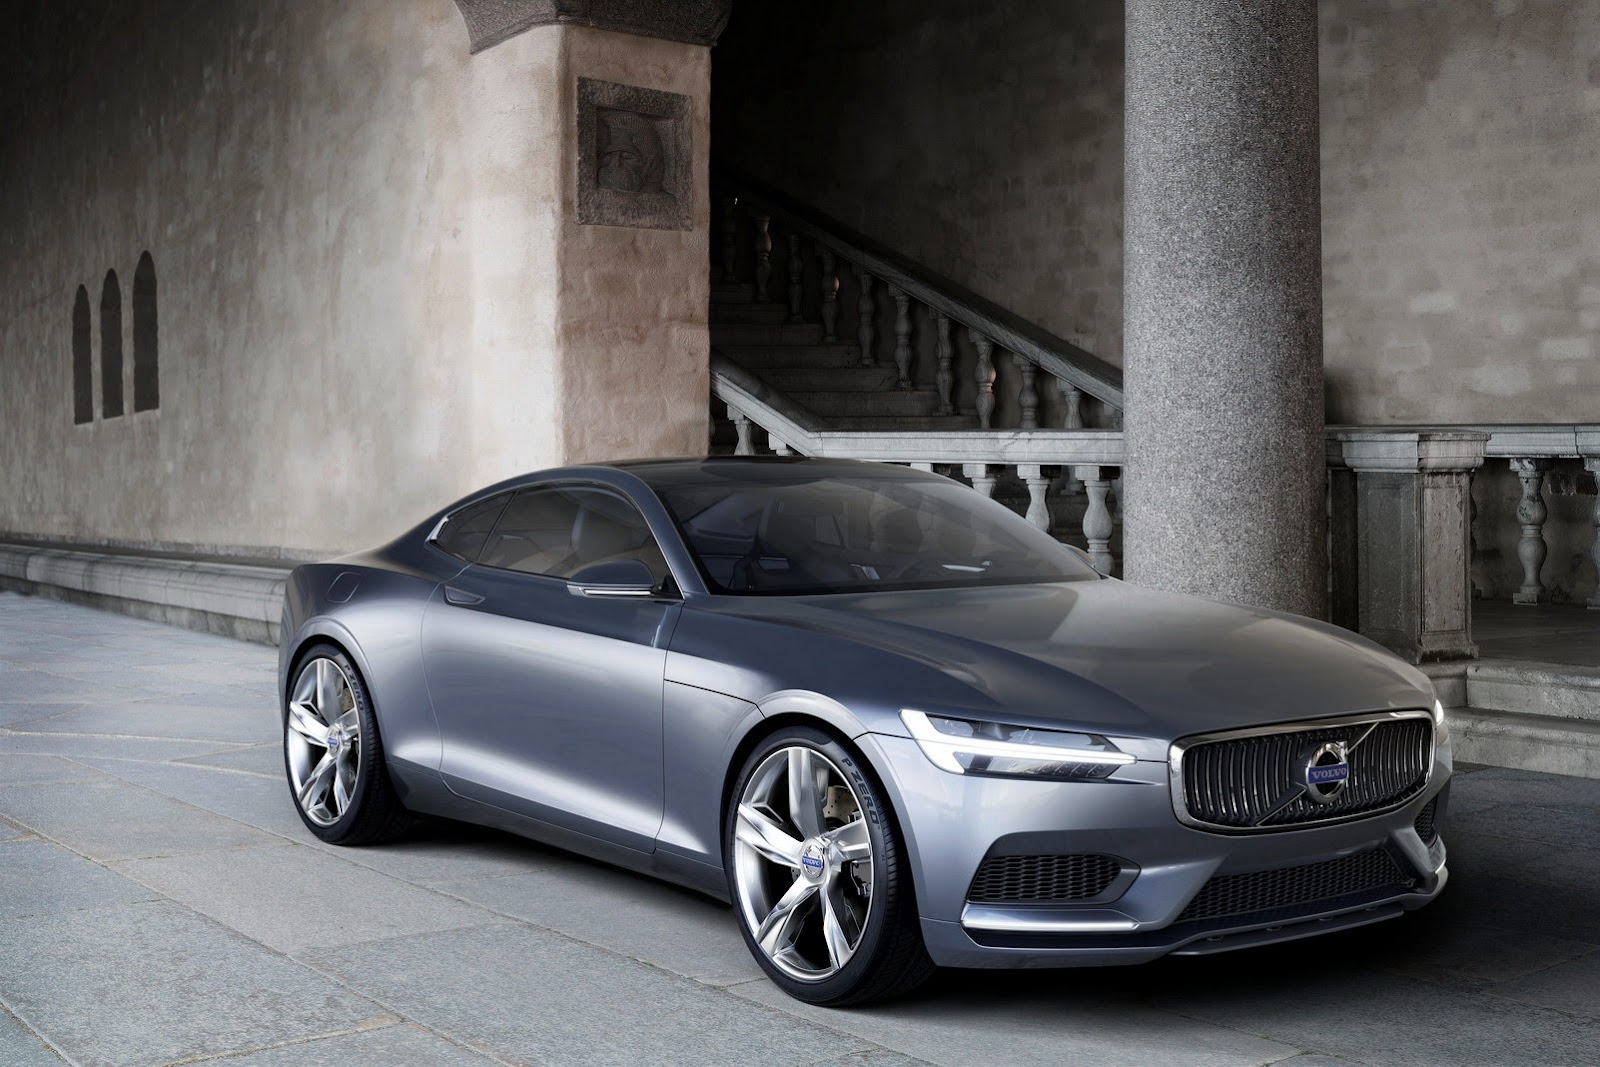 Volvo-Concept-Coupe-18%25255B2%25255D.jpg